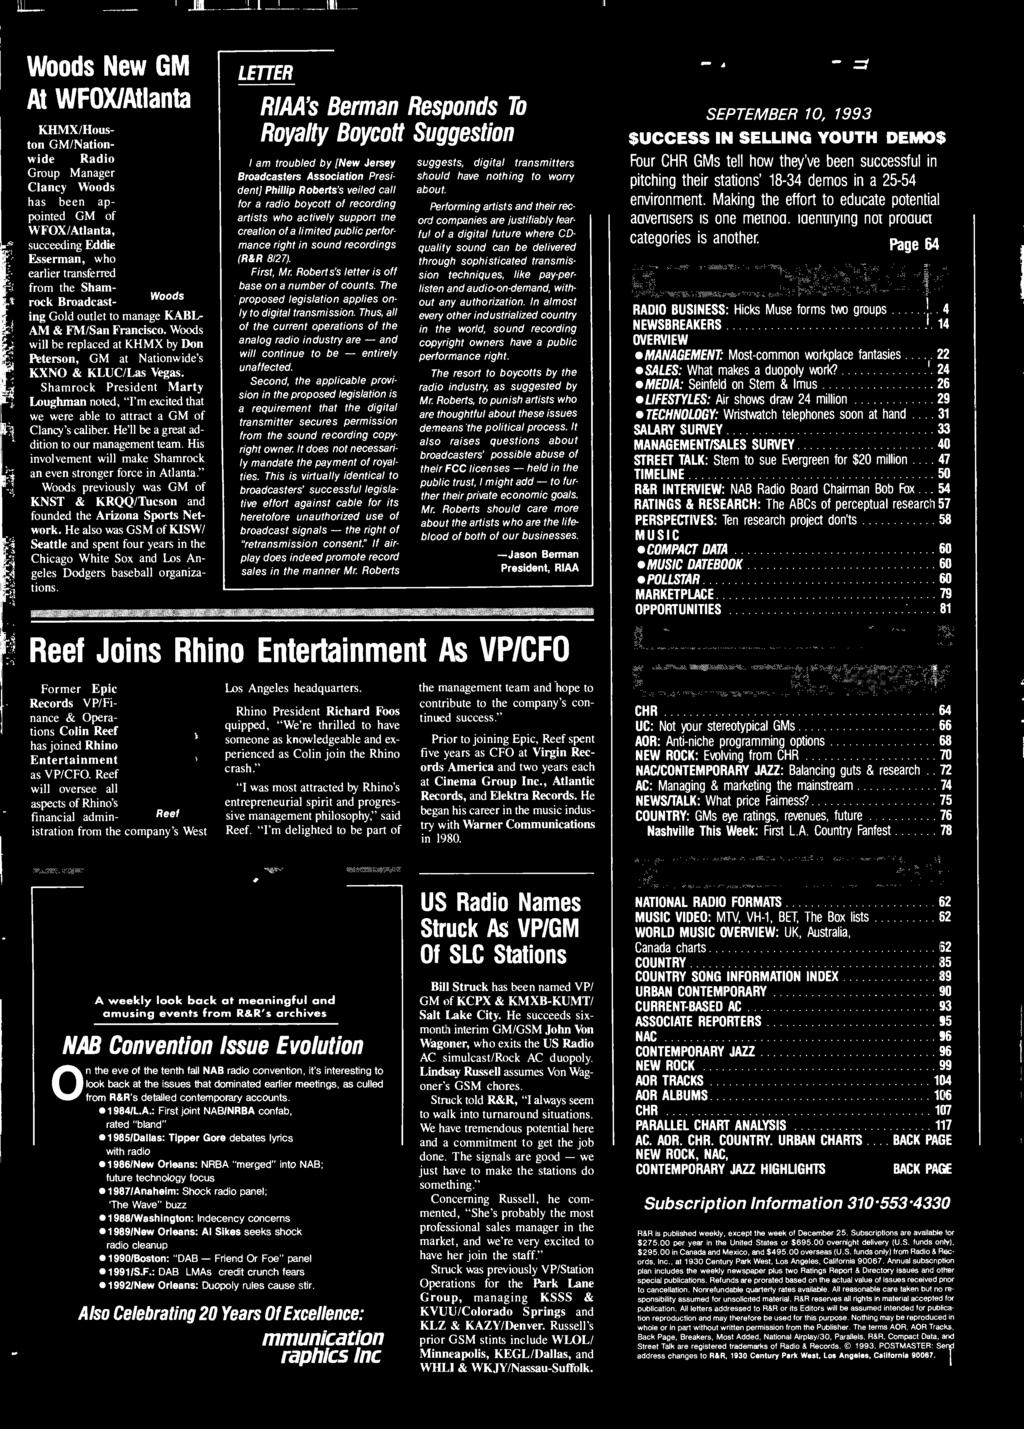 Inside Radio Asks What Price Fairness Pdf 991 Mercury Capri Fuse Box Diagram The Proposed Legislation Applies Only To Digital Transmission Thus All Of Current Operations